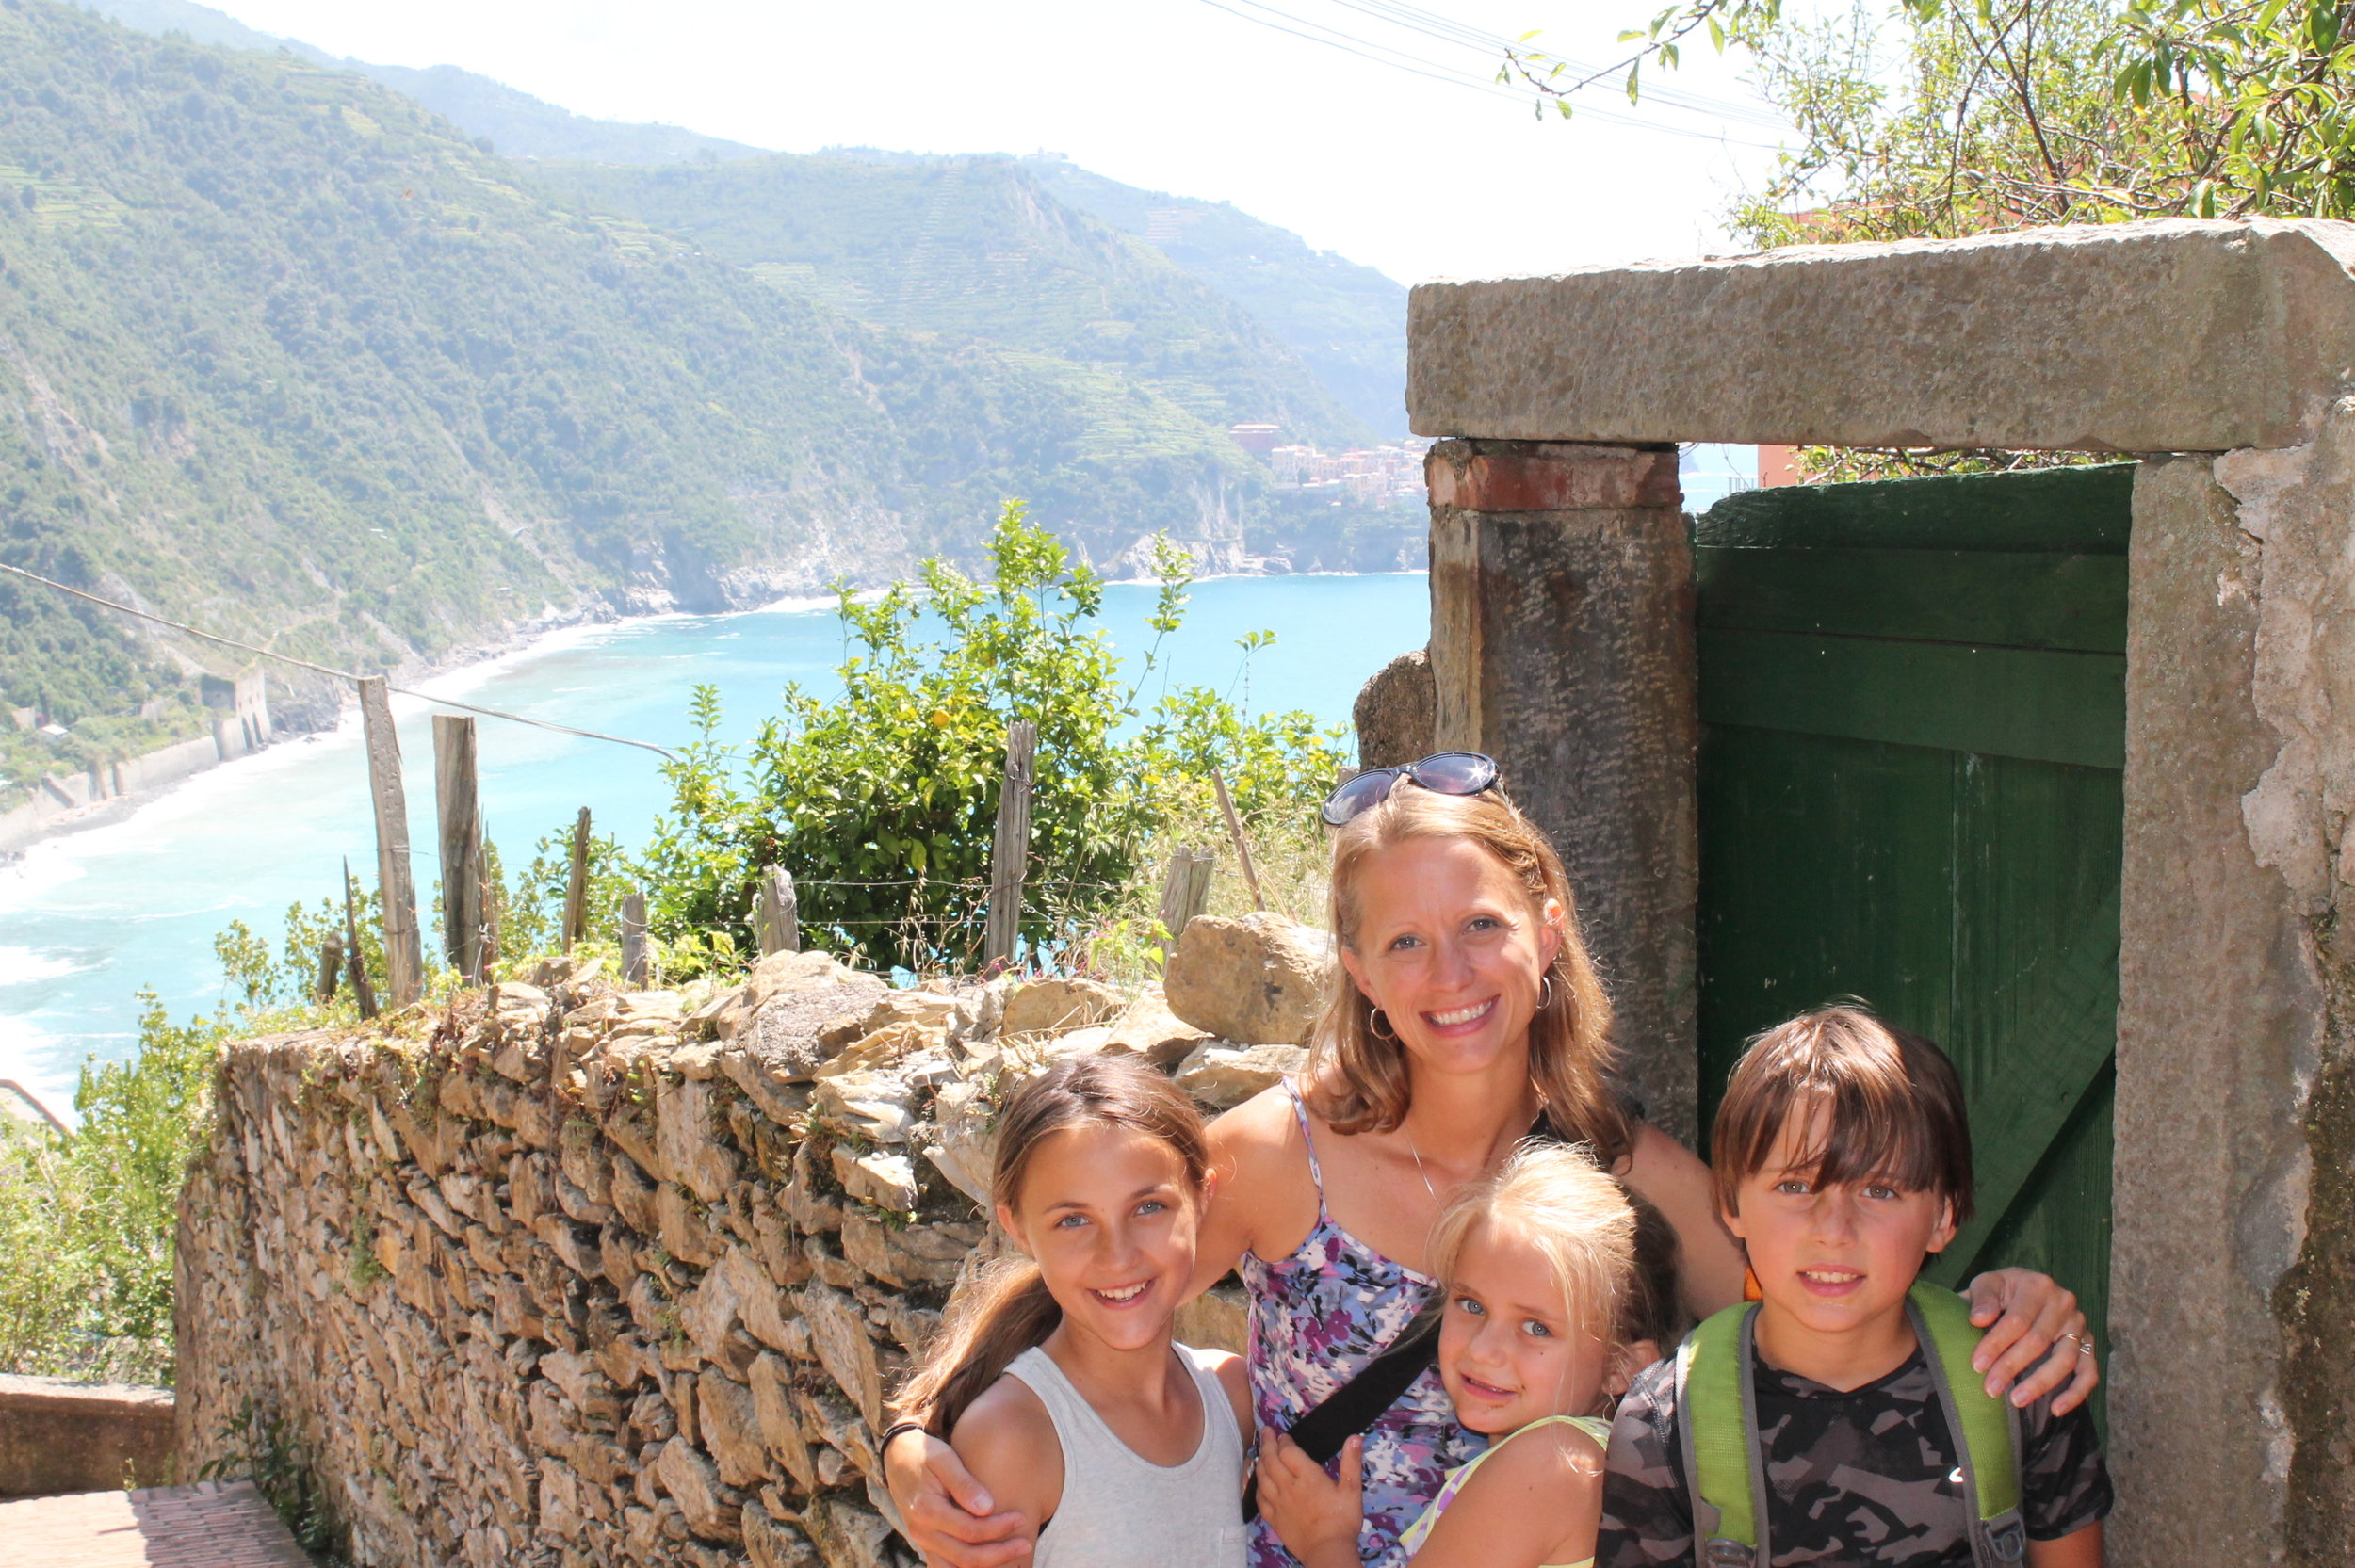 One of my favorite places in the world - Cinque Terre, Italy